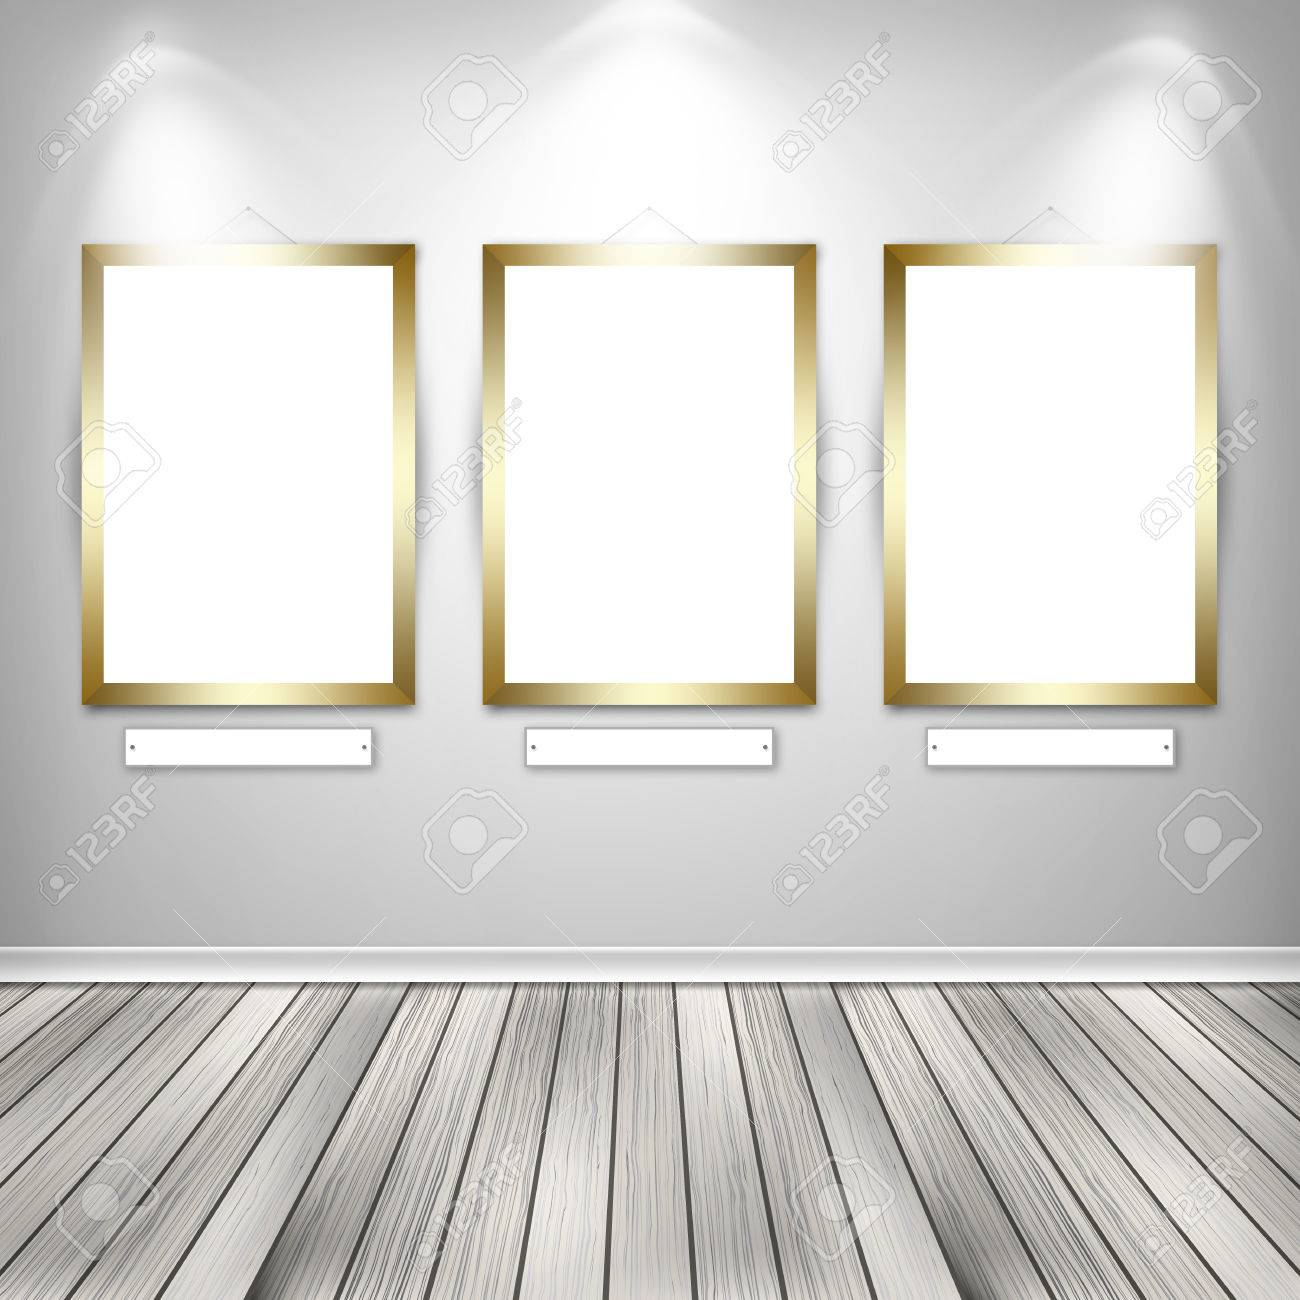 gallery interior with three empty frames on wall stock photo 36519683